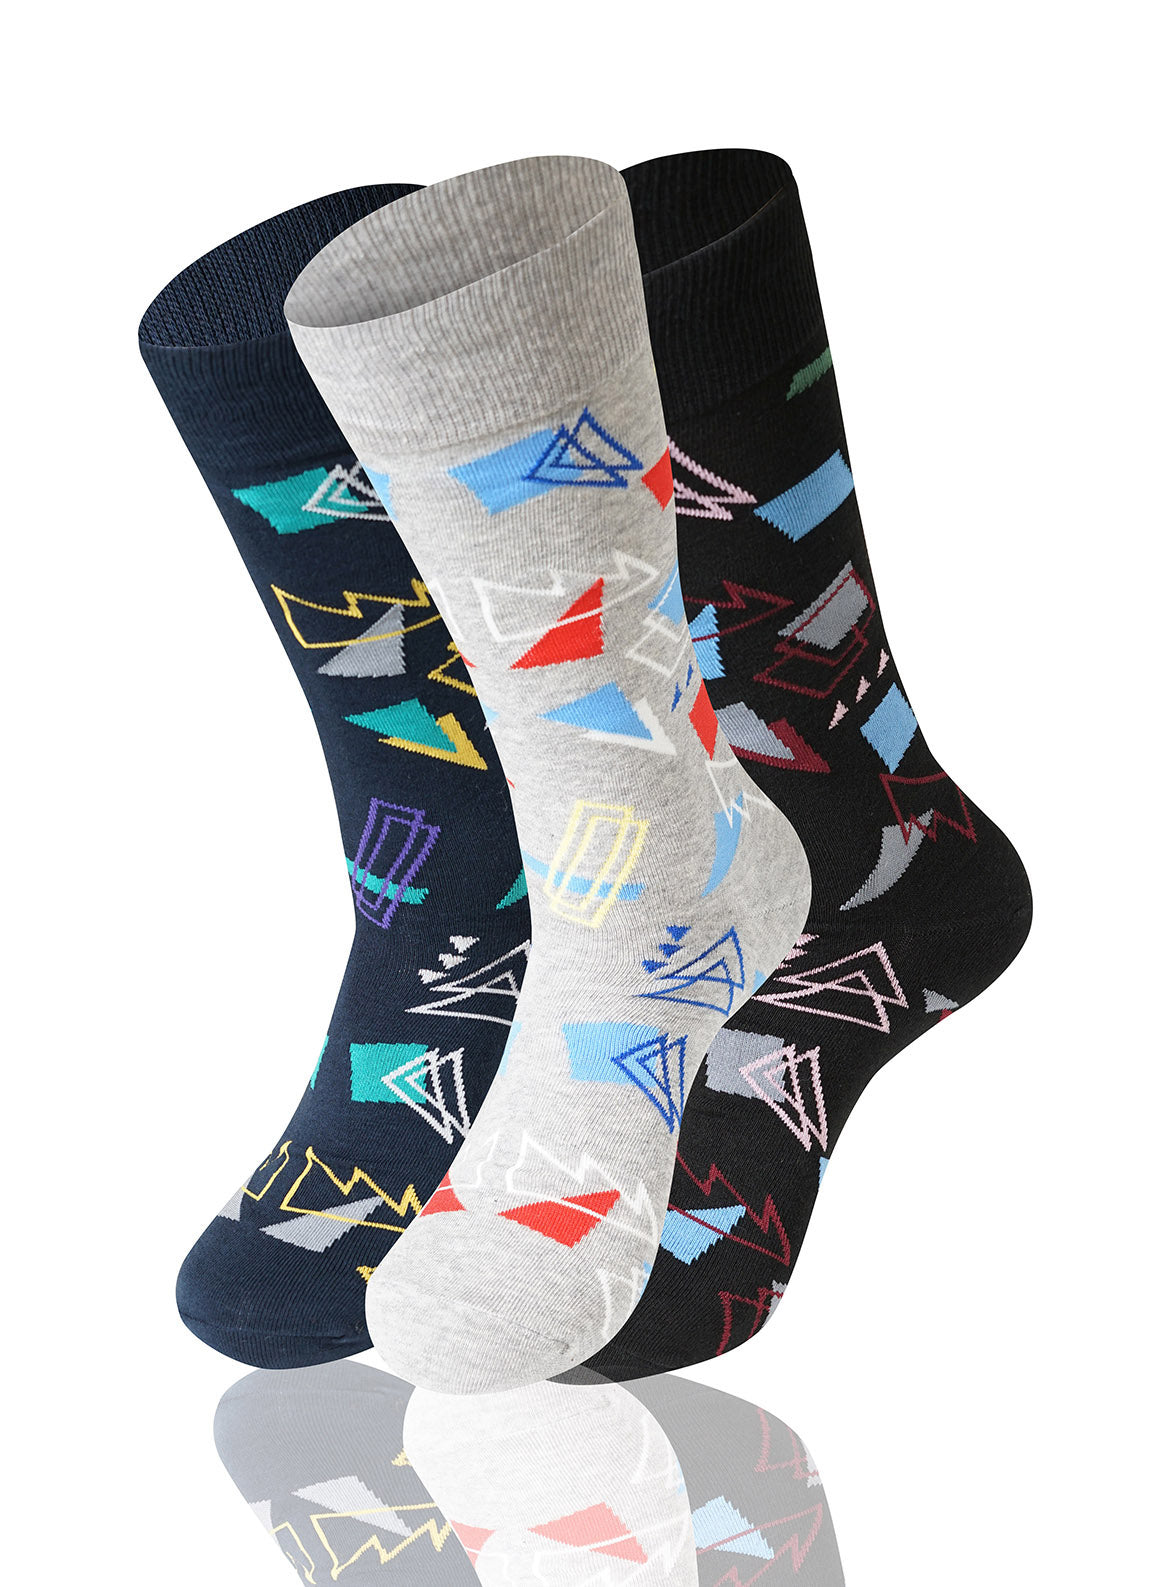 ASSORTED Triangles 3 Pack Novelty Socks - URBANCREWS